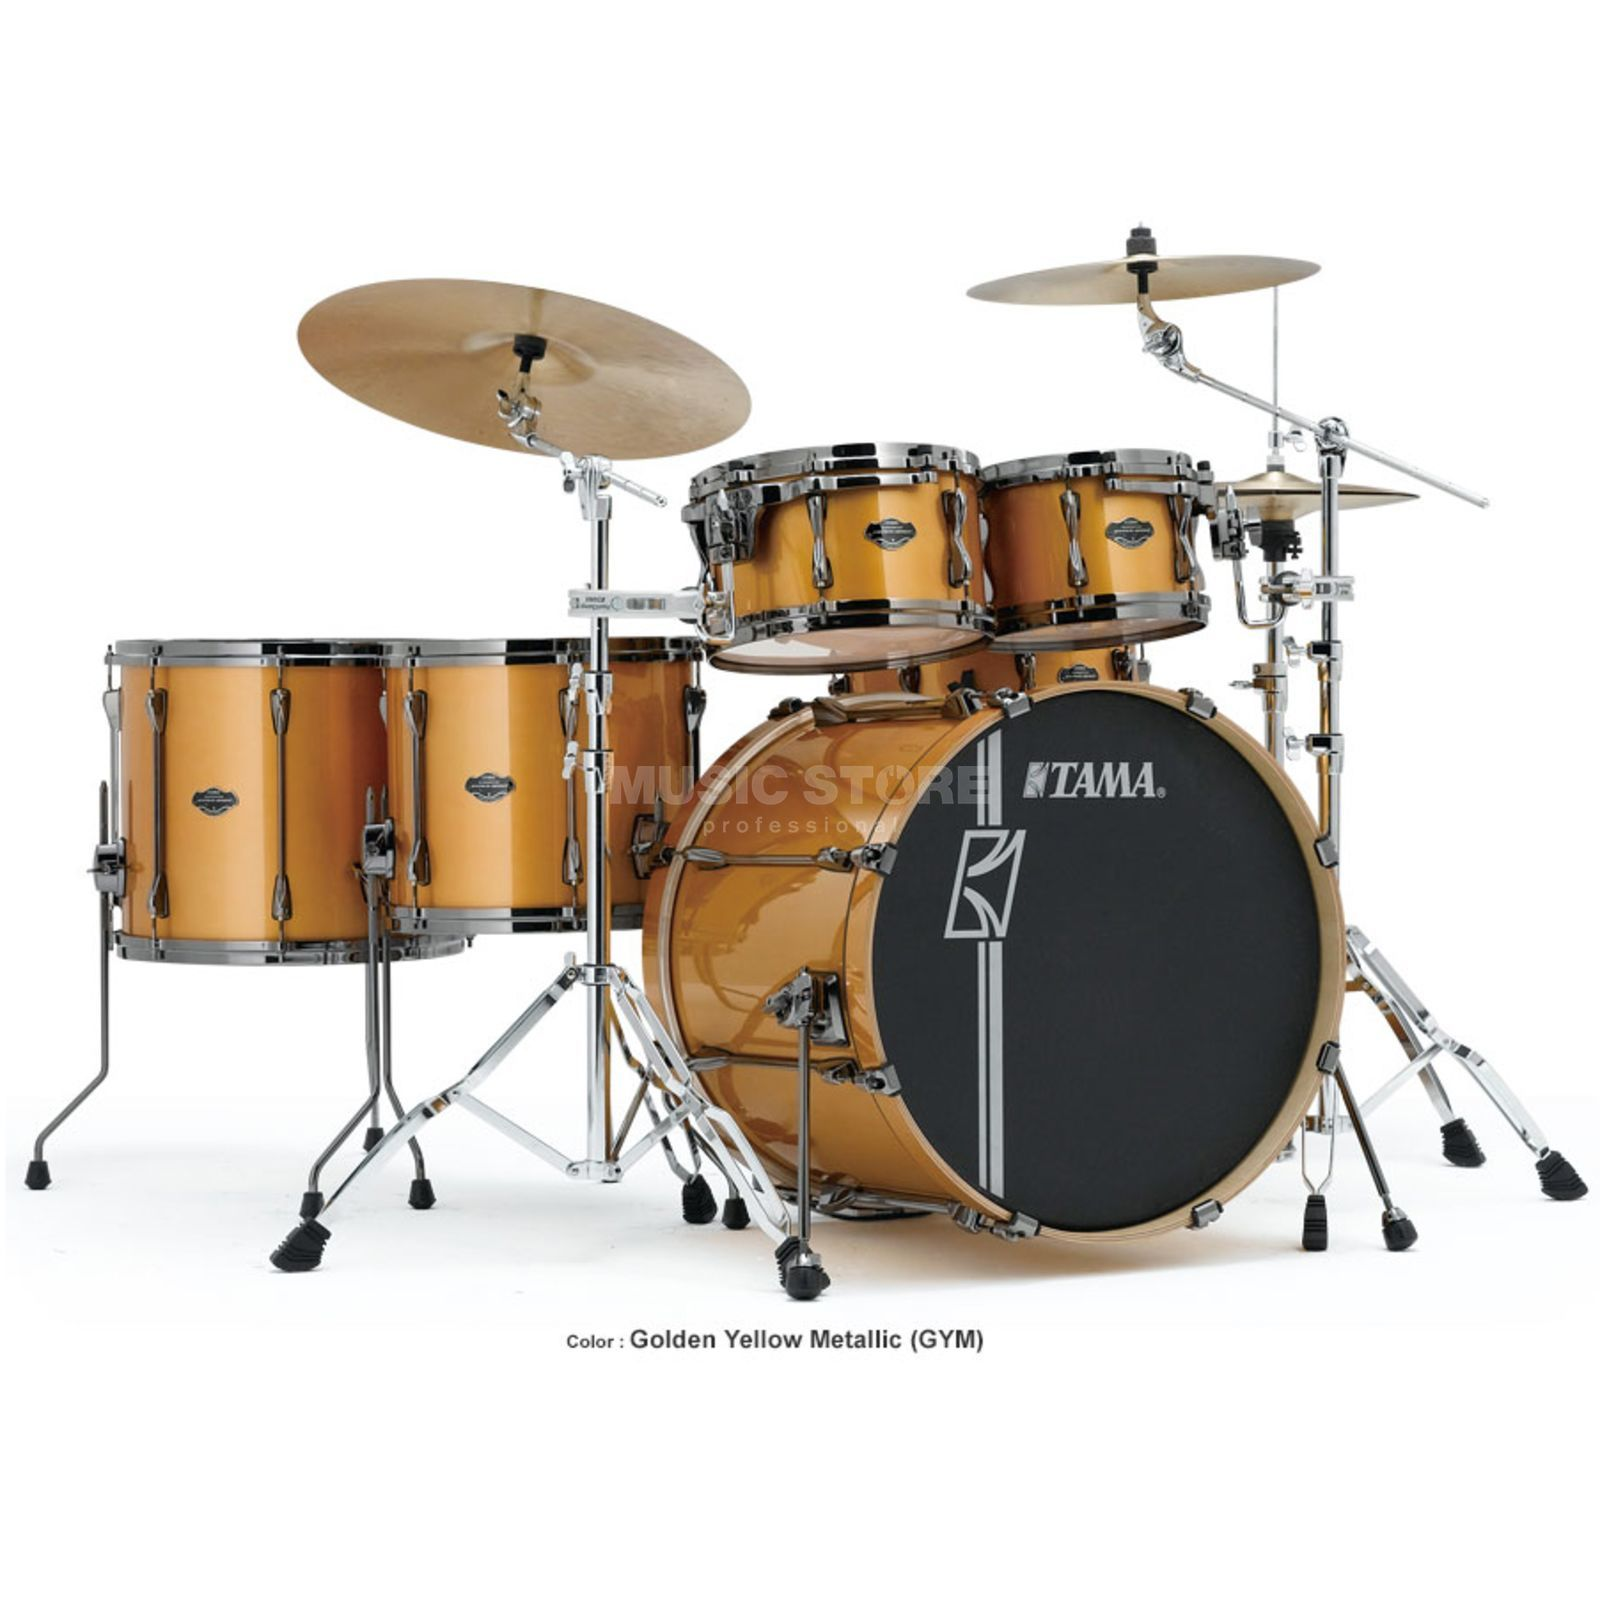 Tama Superstar HD Maple ML62HZBN, Golden Yellow Metallic #GYM Produktbillede